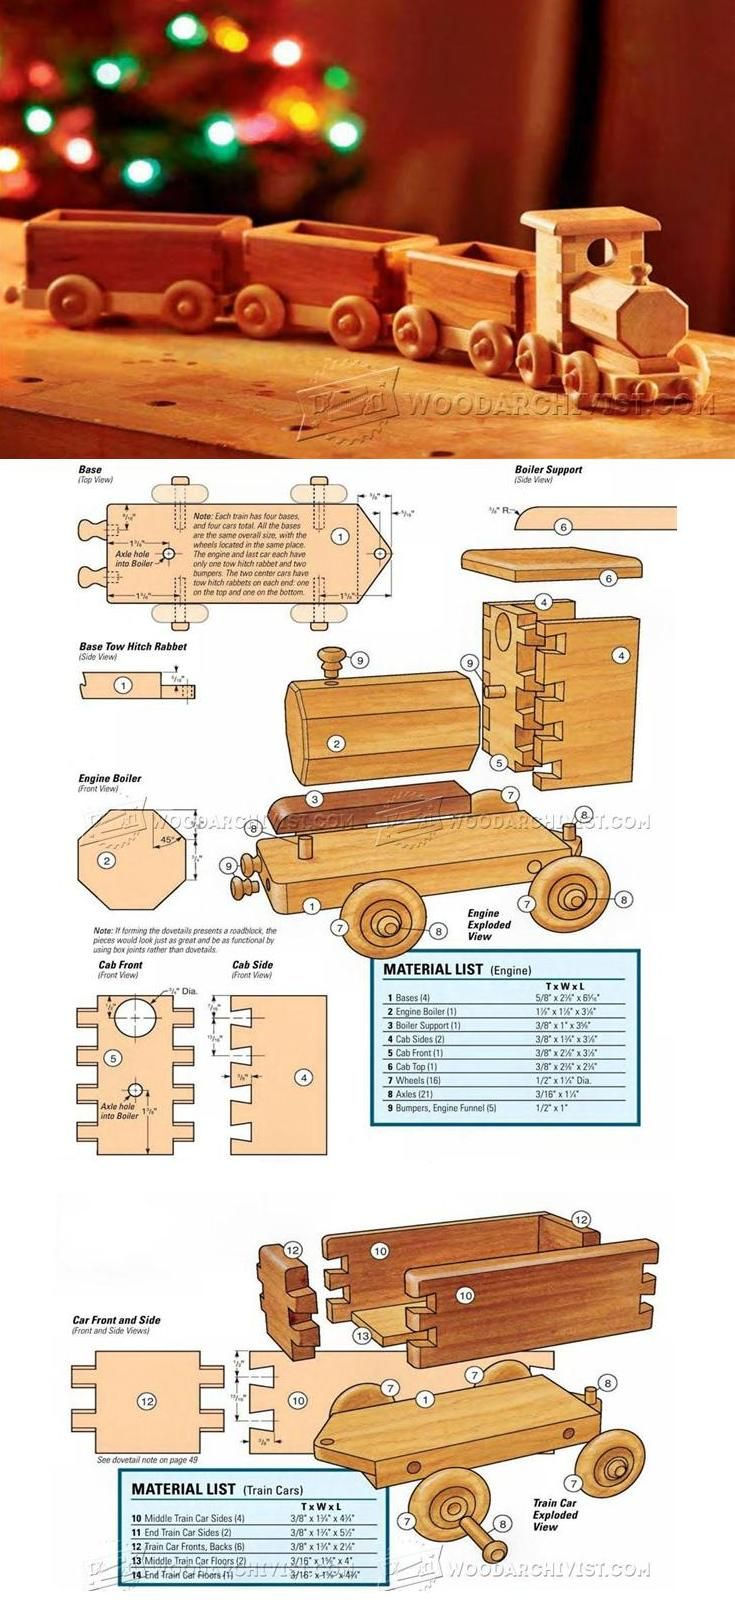 Wooden Train Plans - Children's Wooden Toy Plans and Projects | WoodArchivist.com